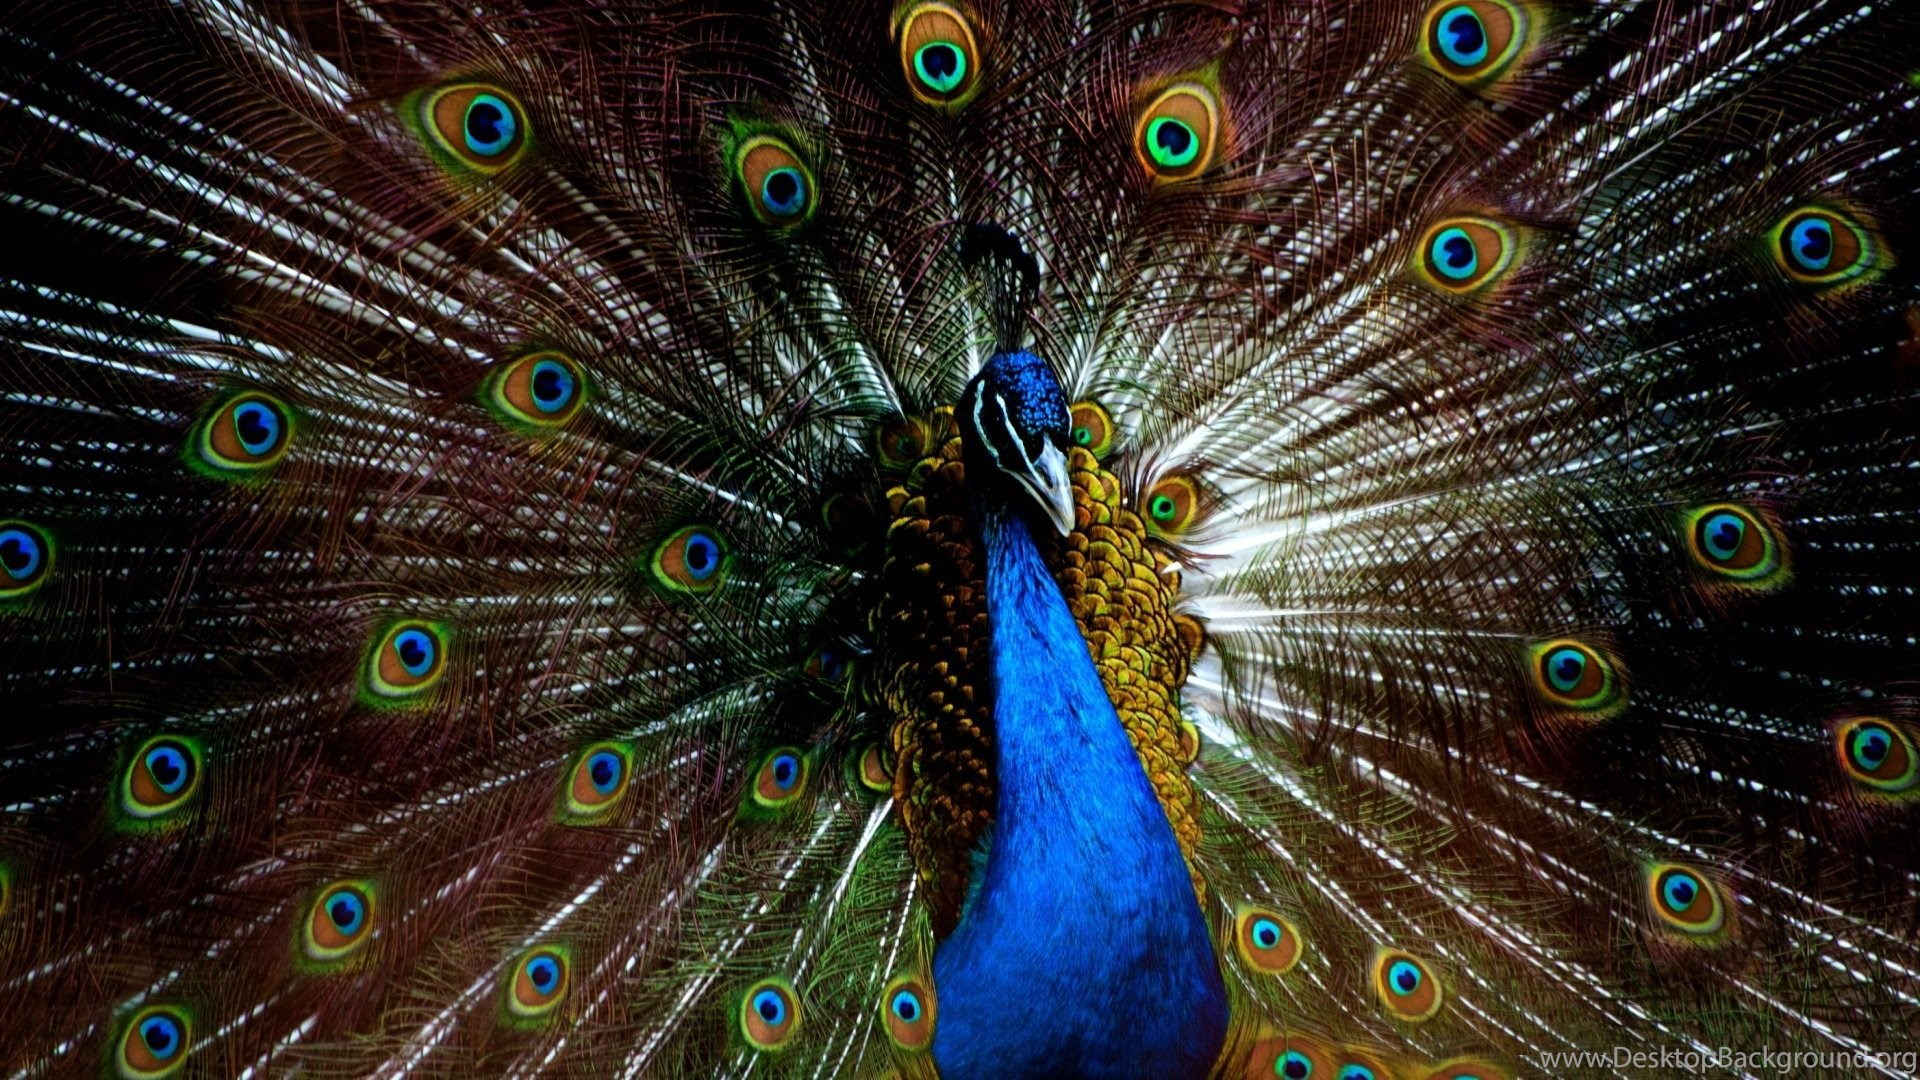 Peacock Feathers Wallpapers HD For Desktop Background